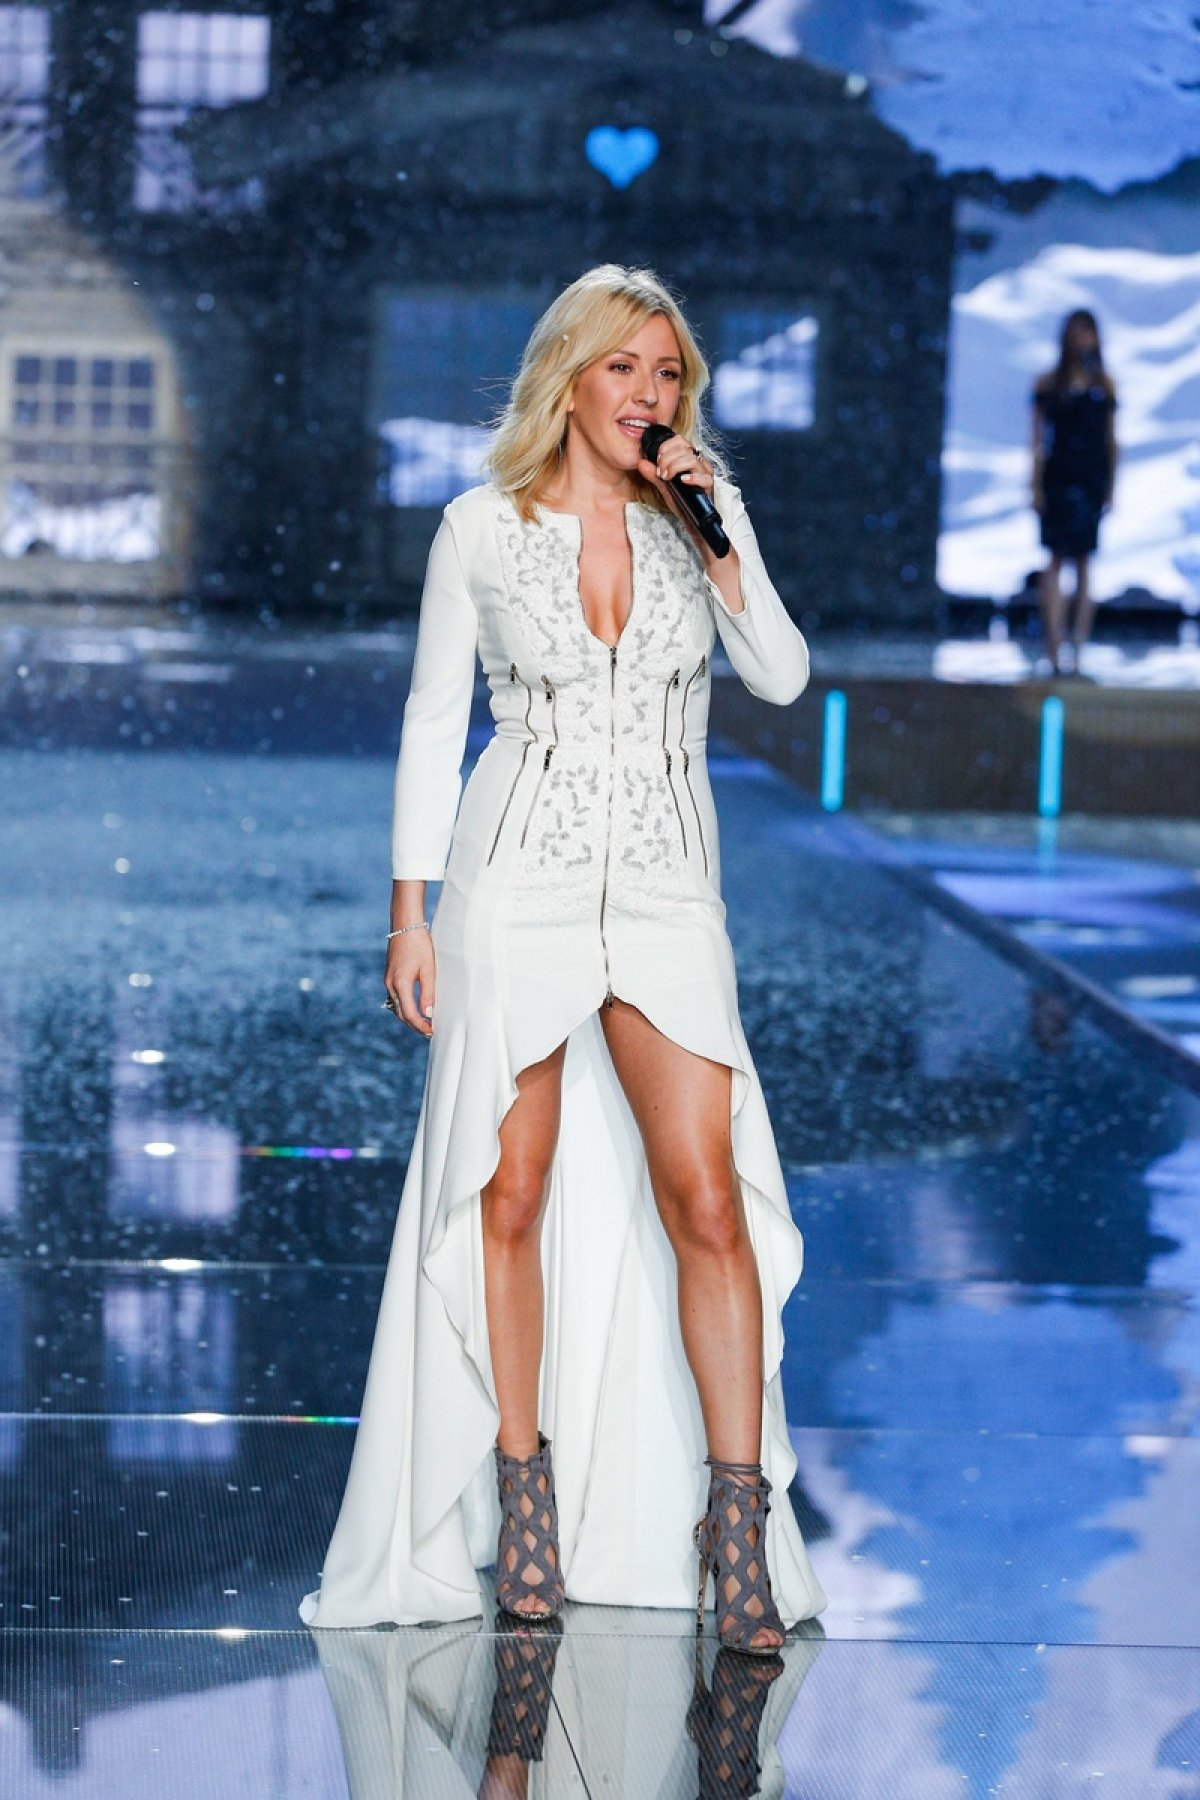 963a9c7b76 The Victoria s Secret Fashion Show NEW YORK 2015 - Work - Done+Dusted